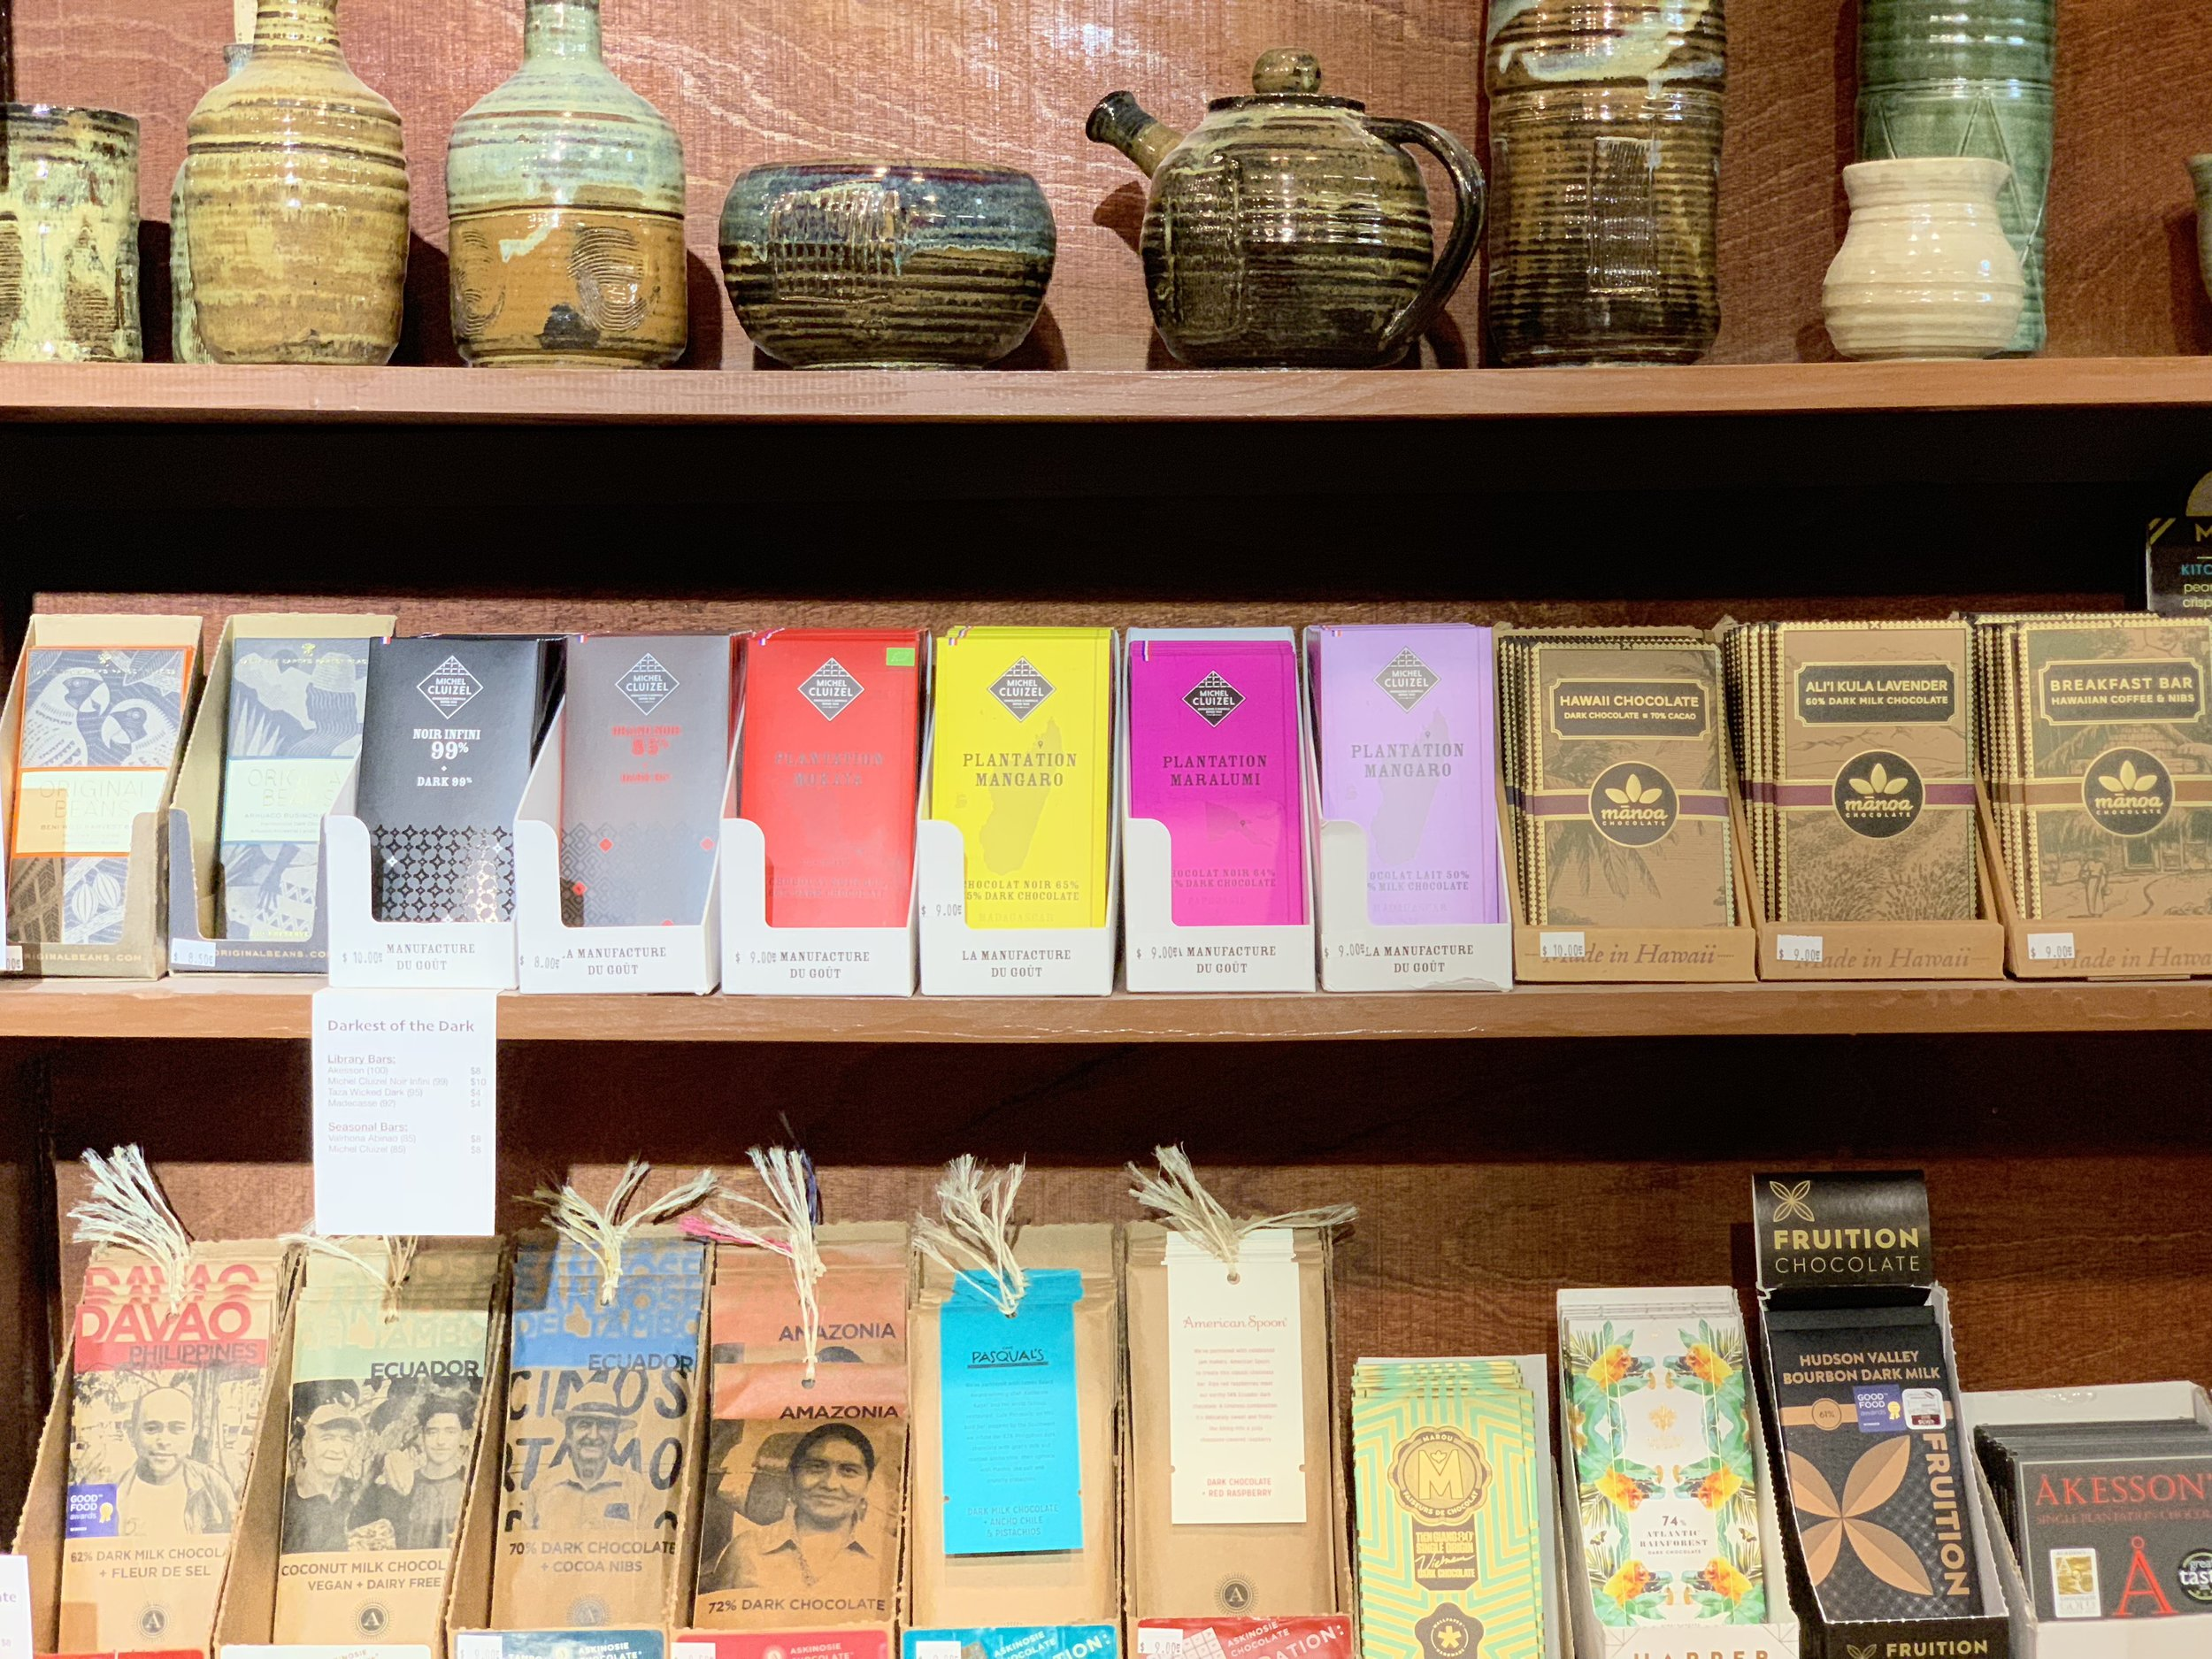 Yahara Chocolate offers more than 70 chocolate bars in their shop in Stoughton, Wisconsin.